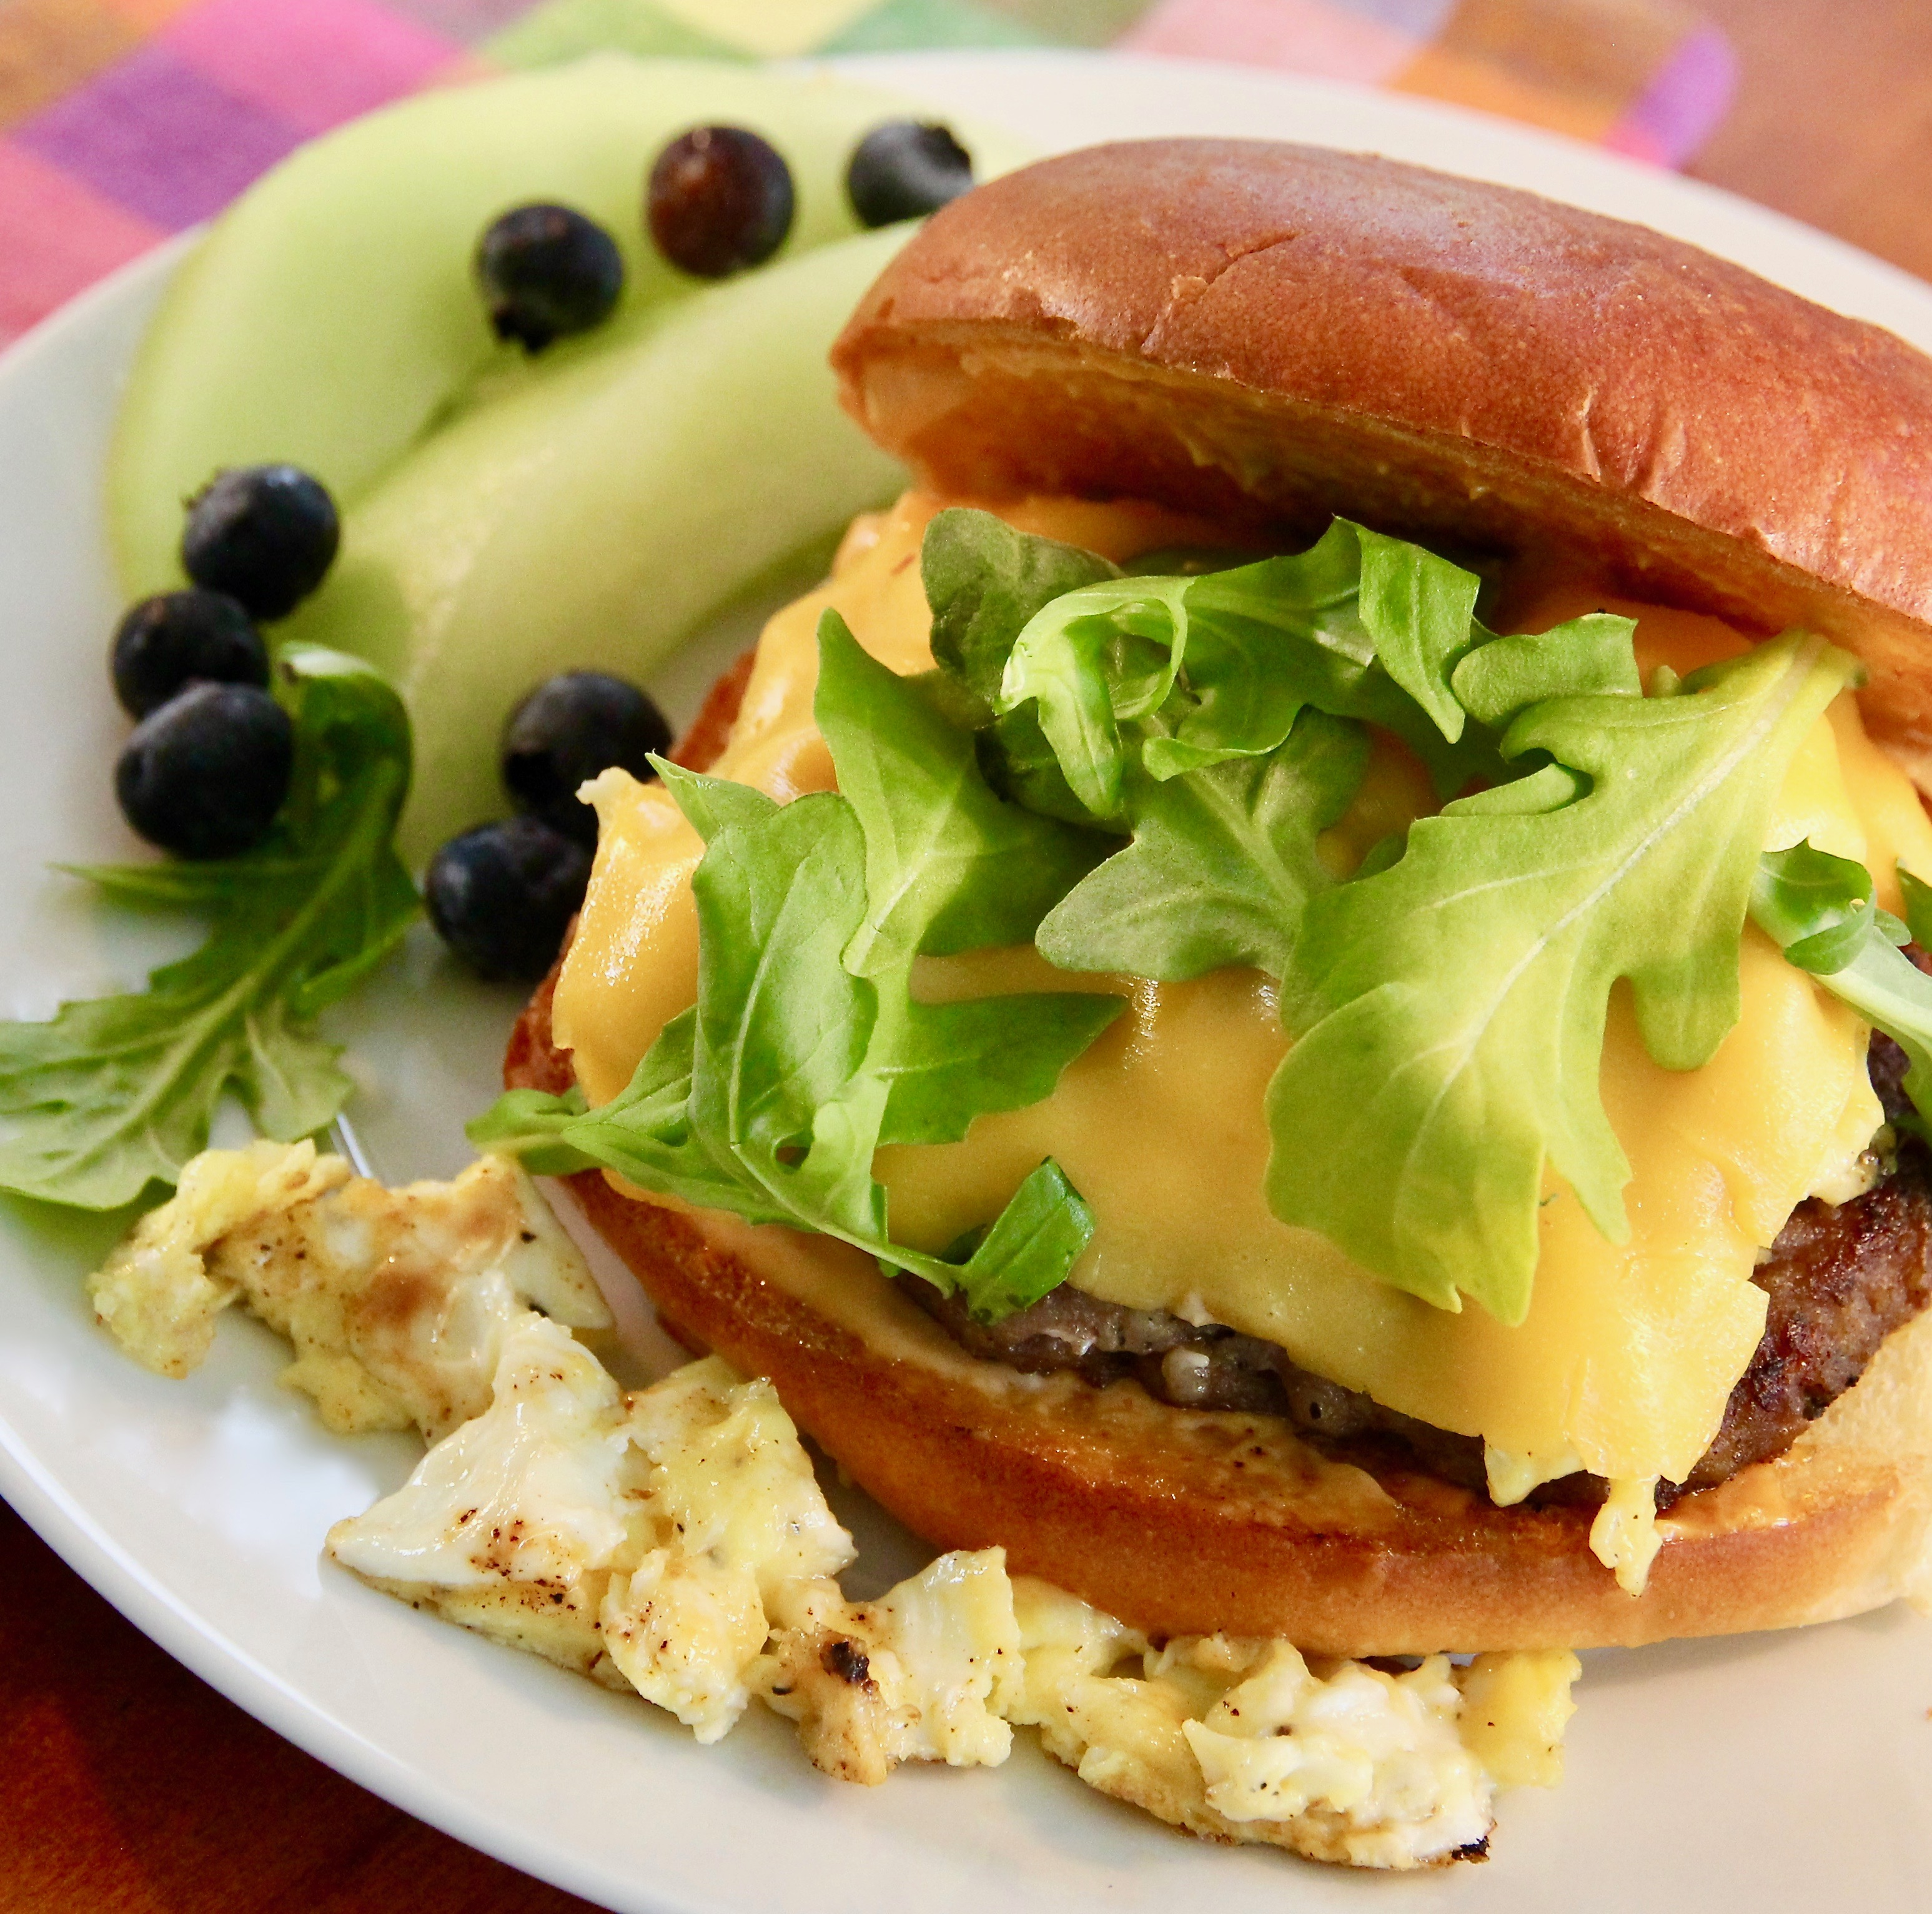 Egg, Sausage and Cheese Breakfast Sandwich